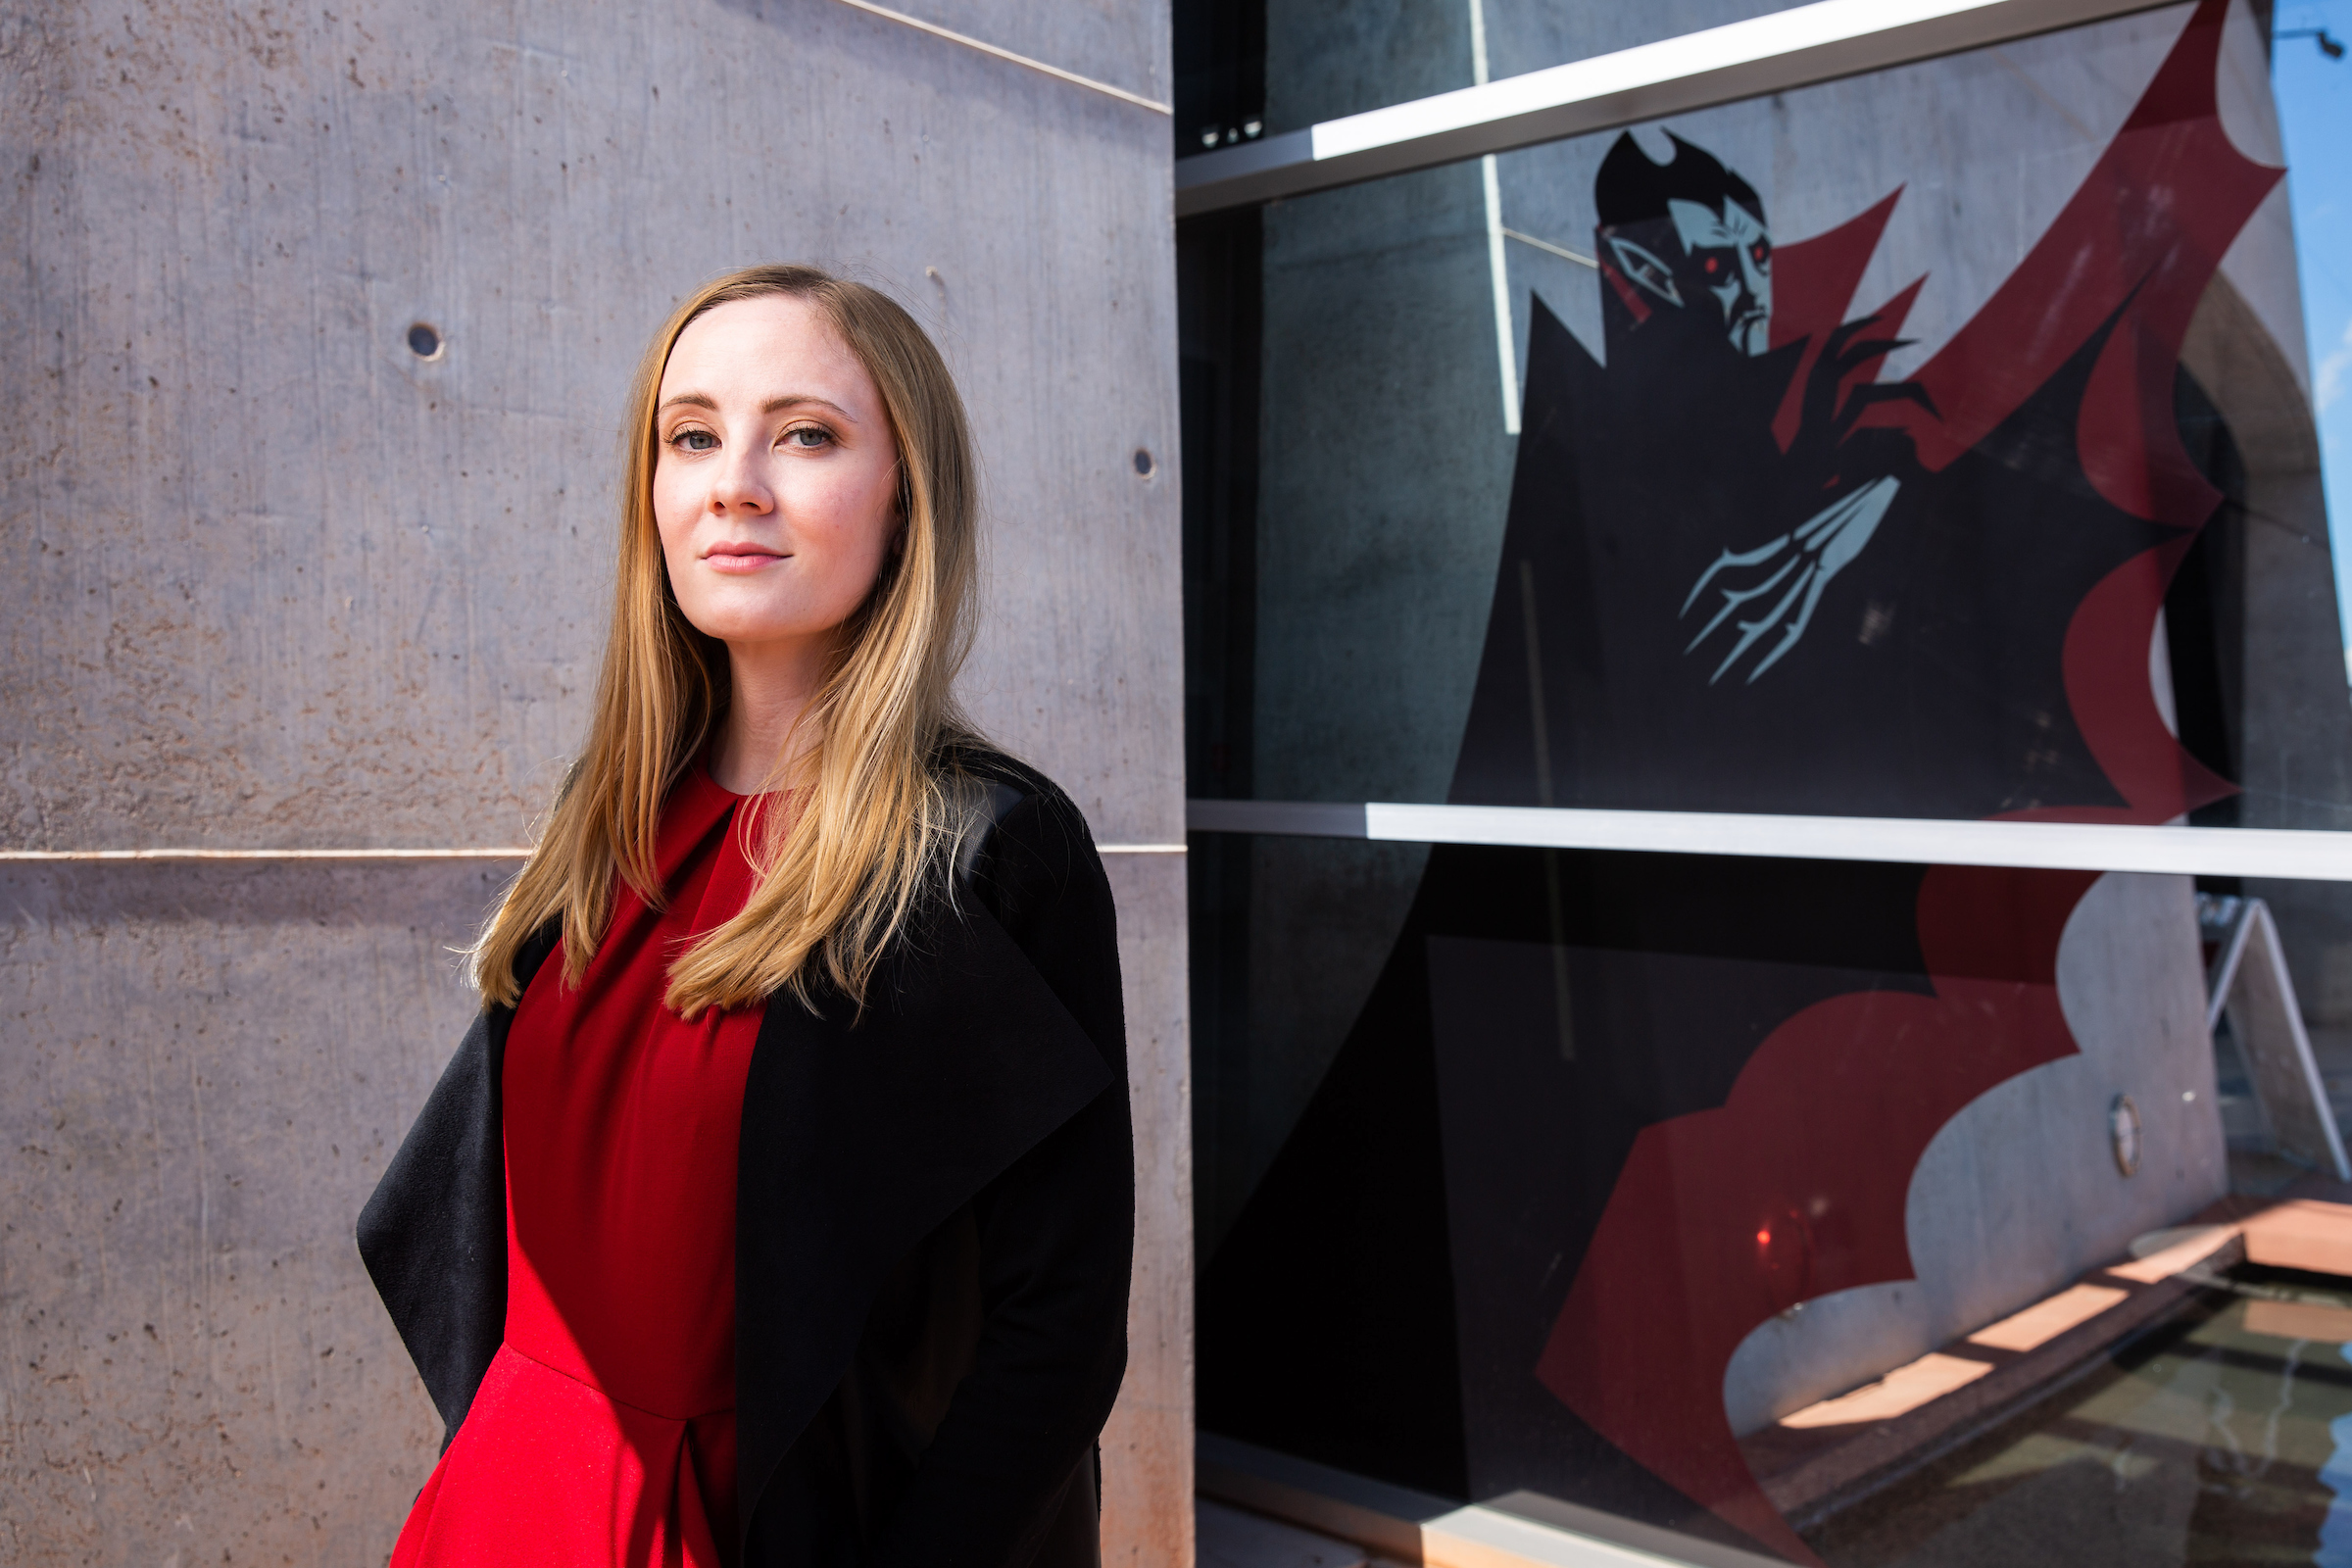 Nursing Schools In Arizona >> What monstrous tales do for human heads | ASU Now: Access, Excellence, Impact